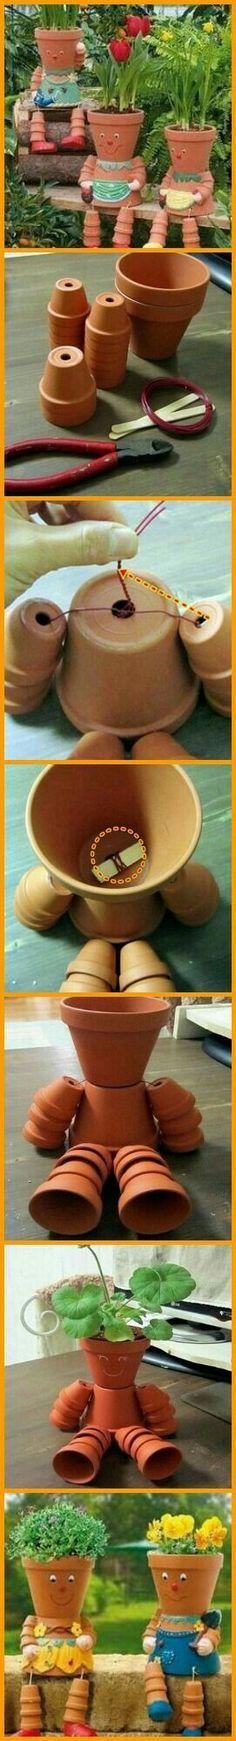 Get the kids interested in gardening by making this DIY clay pot flower people! Flower Pot Art, Clay Flower Pots, Flower Pot Crafts, Clay Pots, Clay Pot Projects, Clay Pot Crafts, Diy Clay, Flower Pot People, Clay Pot People